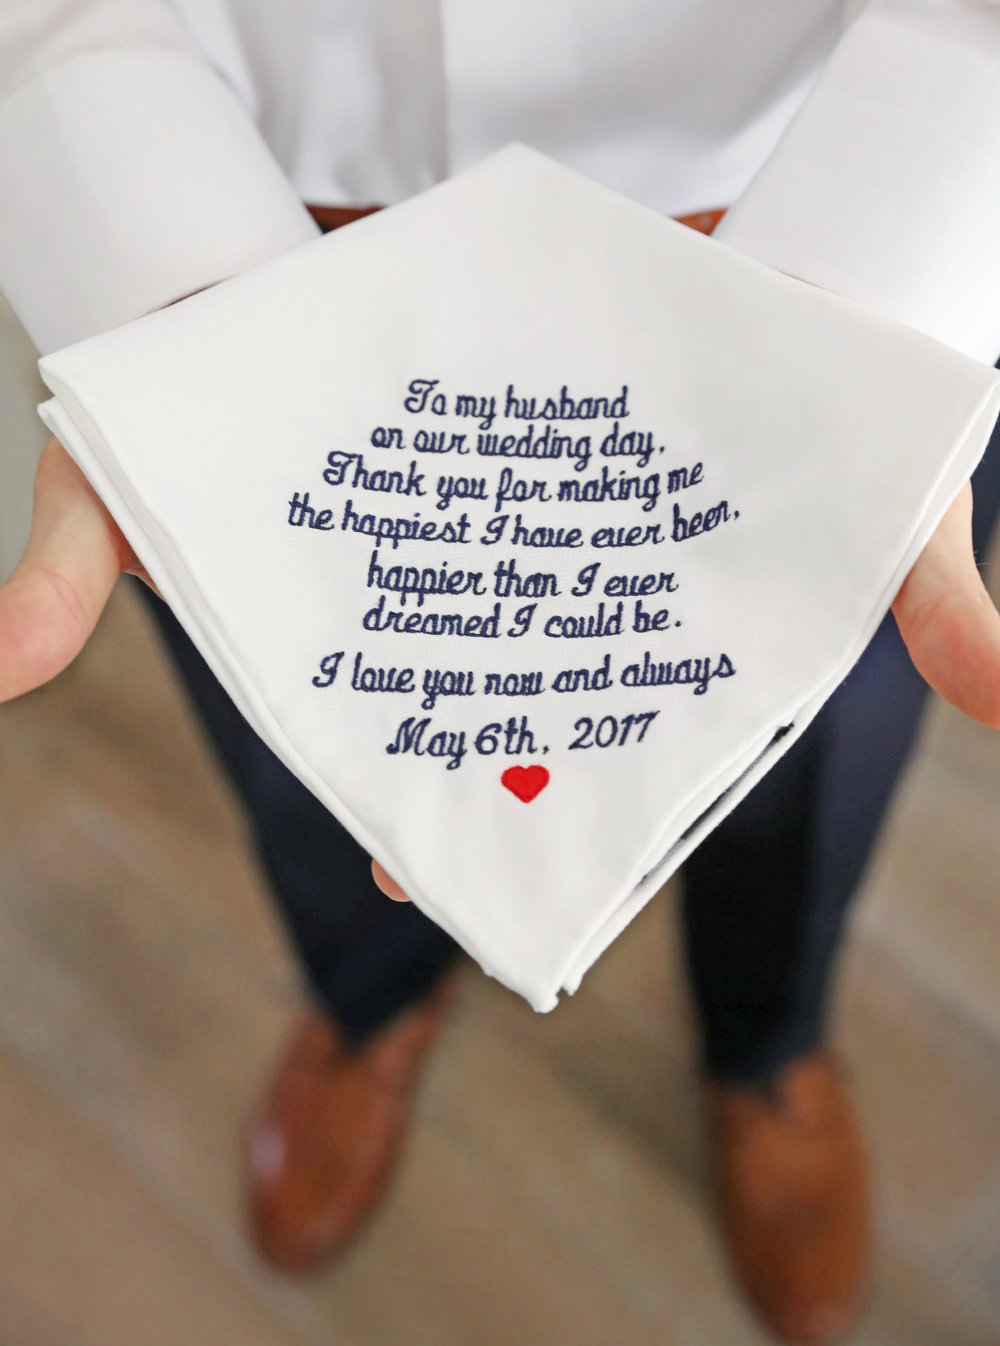 As a super sweet gift, the bride embroidered a message to her husband-to-be on a handkerchief he could carry with him down the aisle.